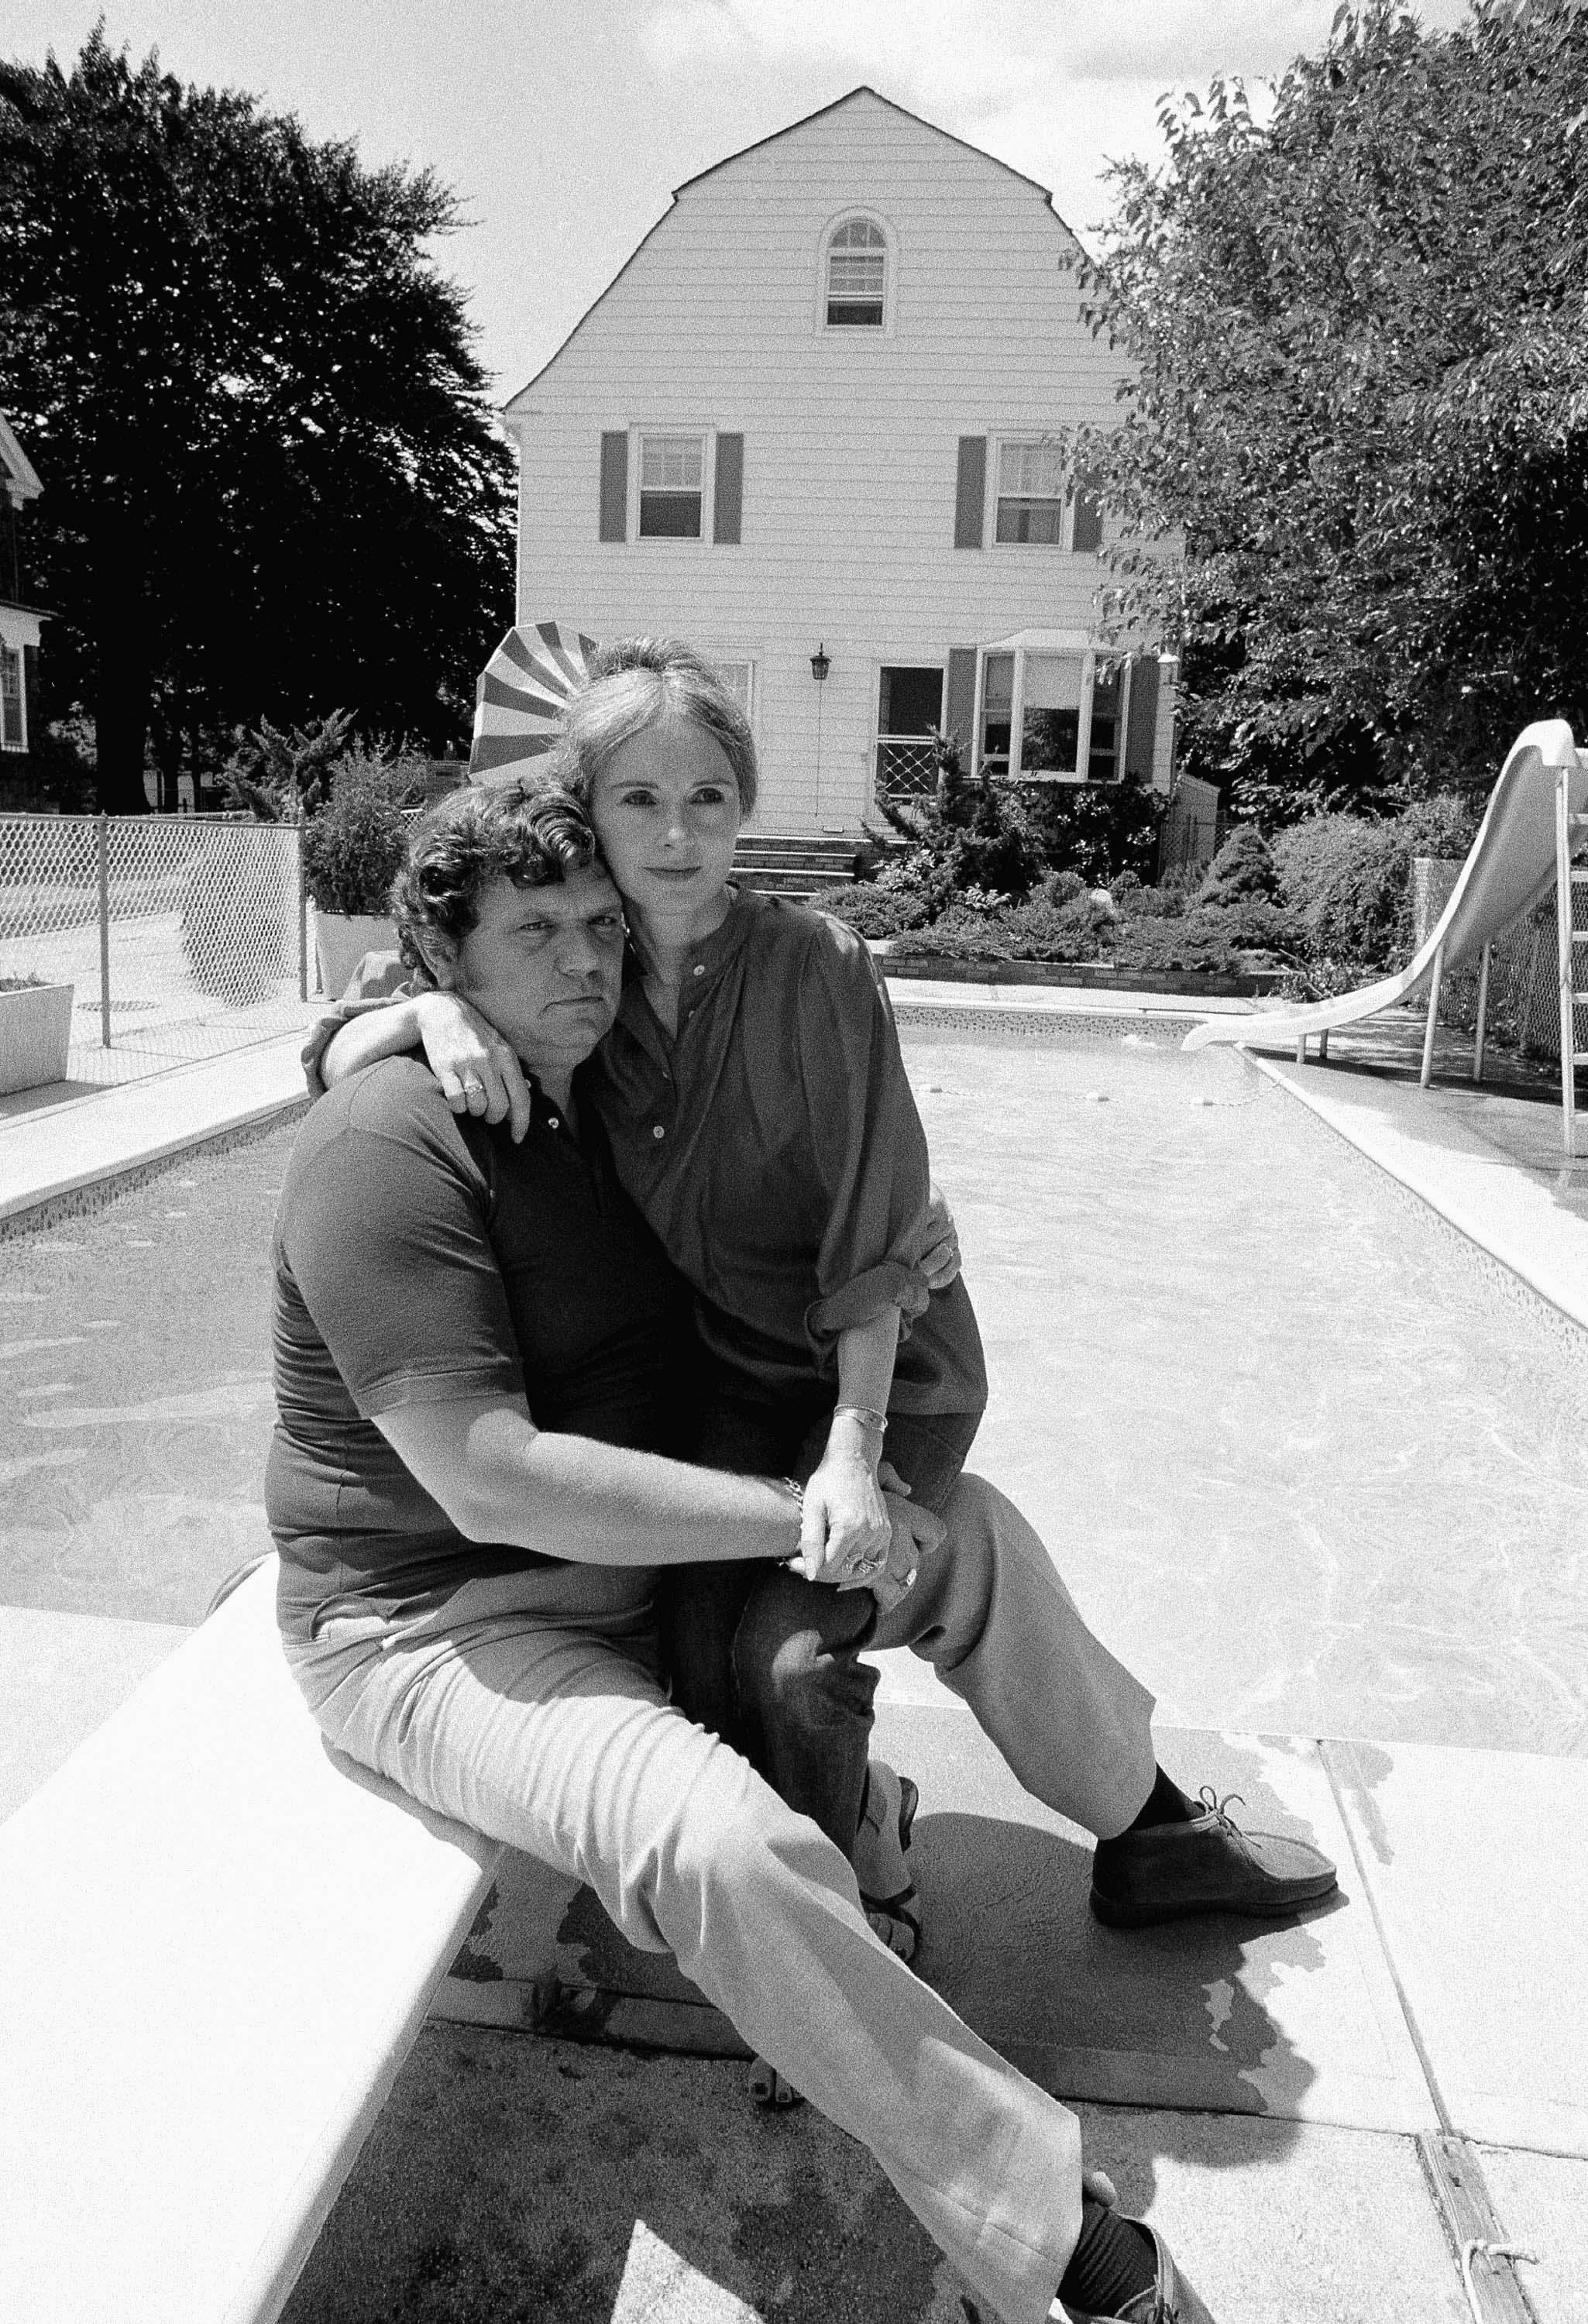 Jim and Barbara Cromarty pose near pool of their Amityville home in 1979. The couple opened their home to newsmen to disprove stories about eerie happenings at the house where the Defeo family was slain years ago. (AP Photo/Dan Grossi)